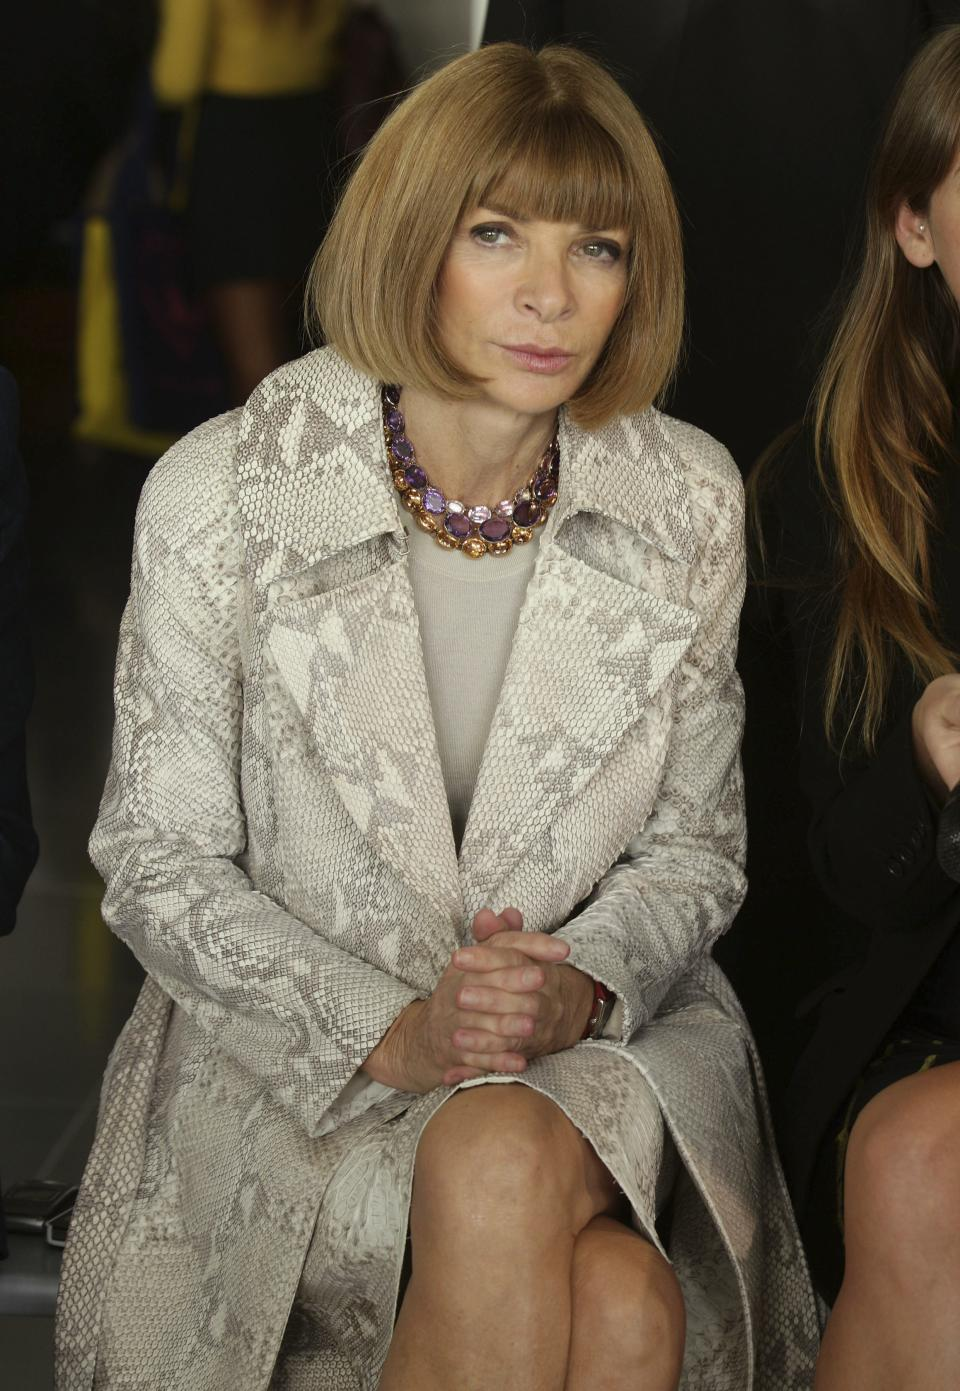 English born editor-in-chief of American Vogue, Anna Wintour attends the Christopher Kane spring/summer 2013 show, during London Fashion Week, at Park House in central London, Monday Sept.17, 2012. (AP Photo/Yui Mok/PA) UNITED KINGDOM OUT